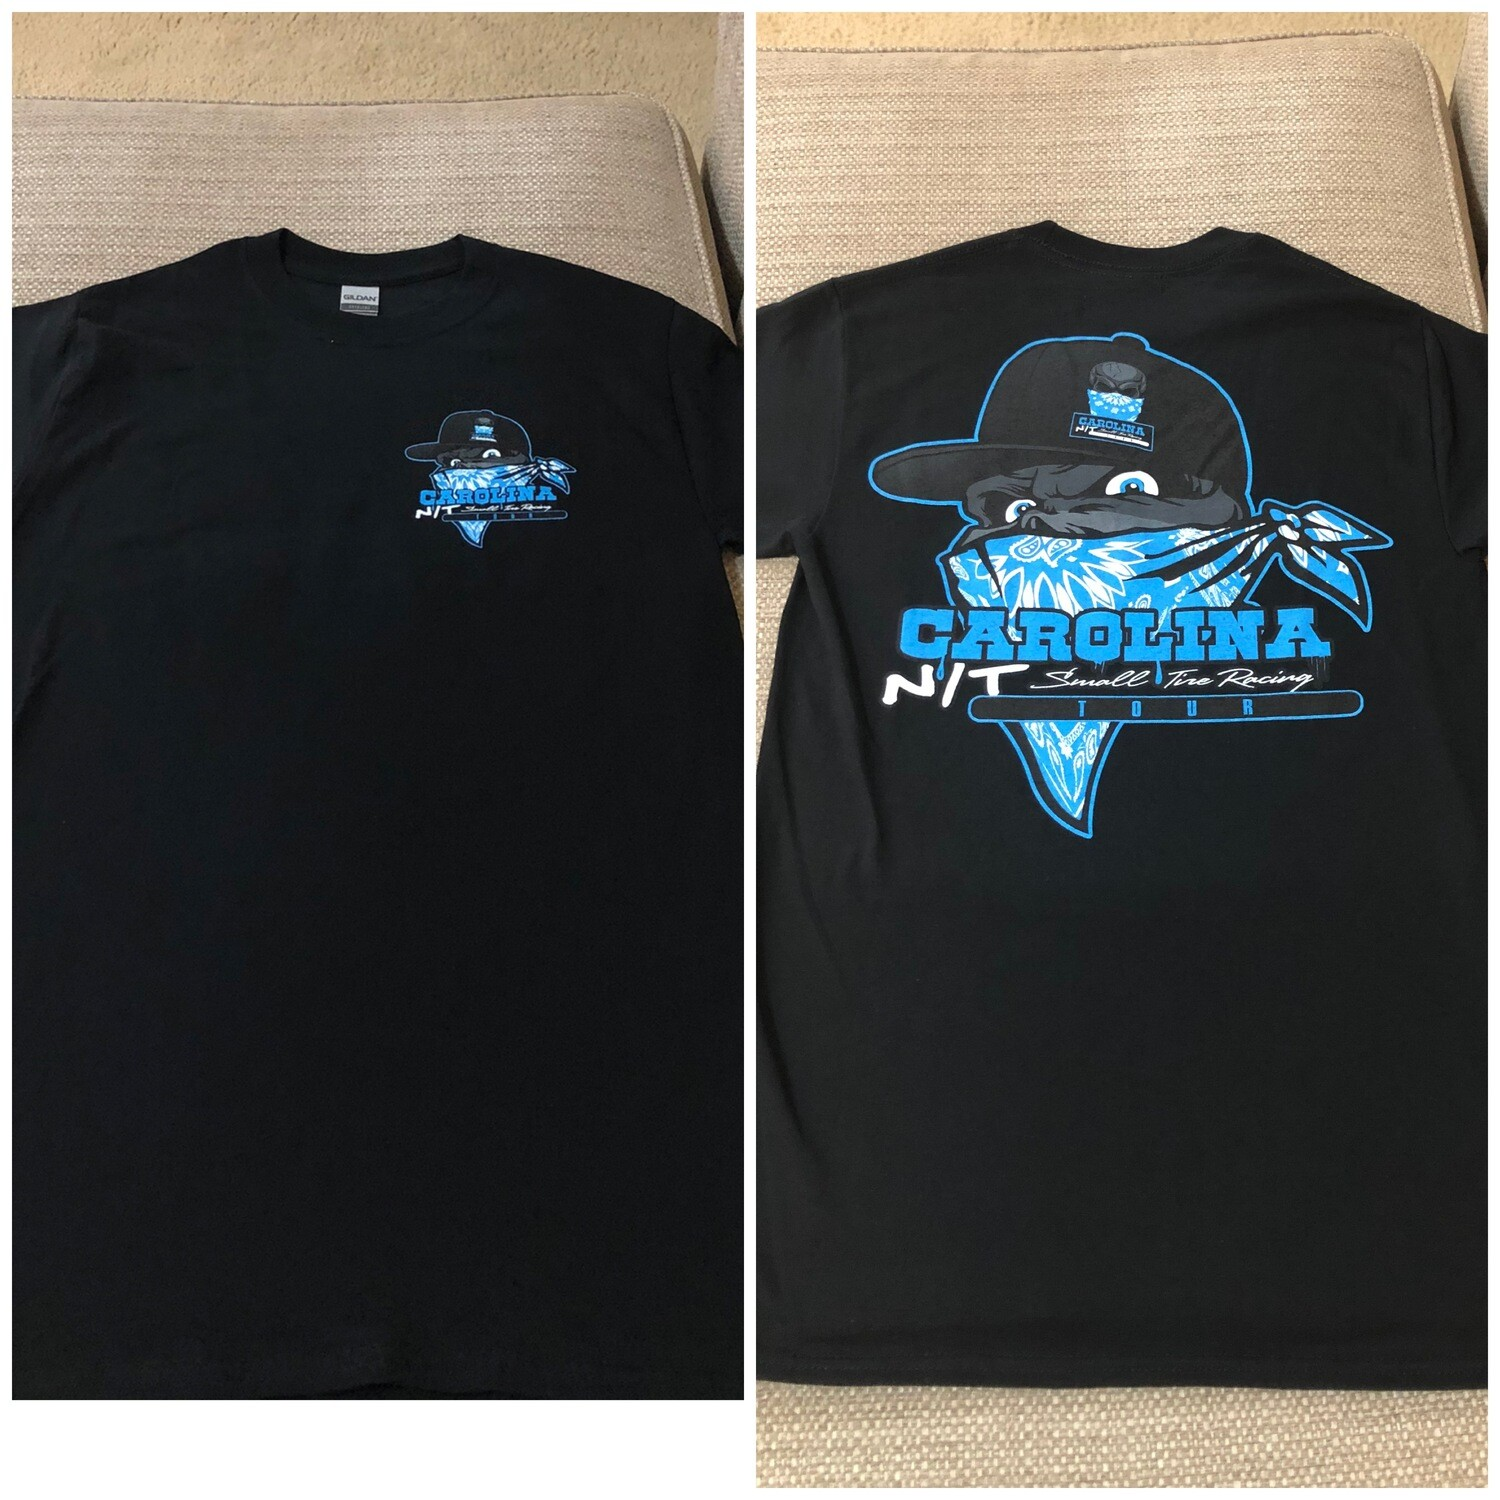 OG Bandit Black/Blue shirt